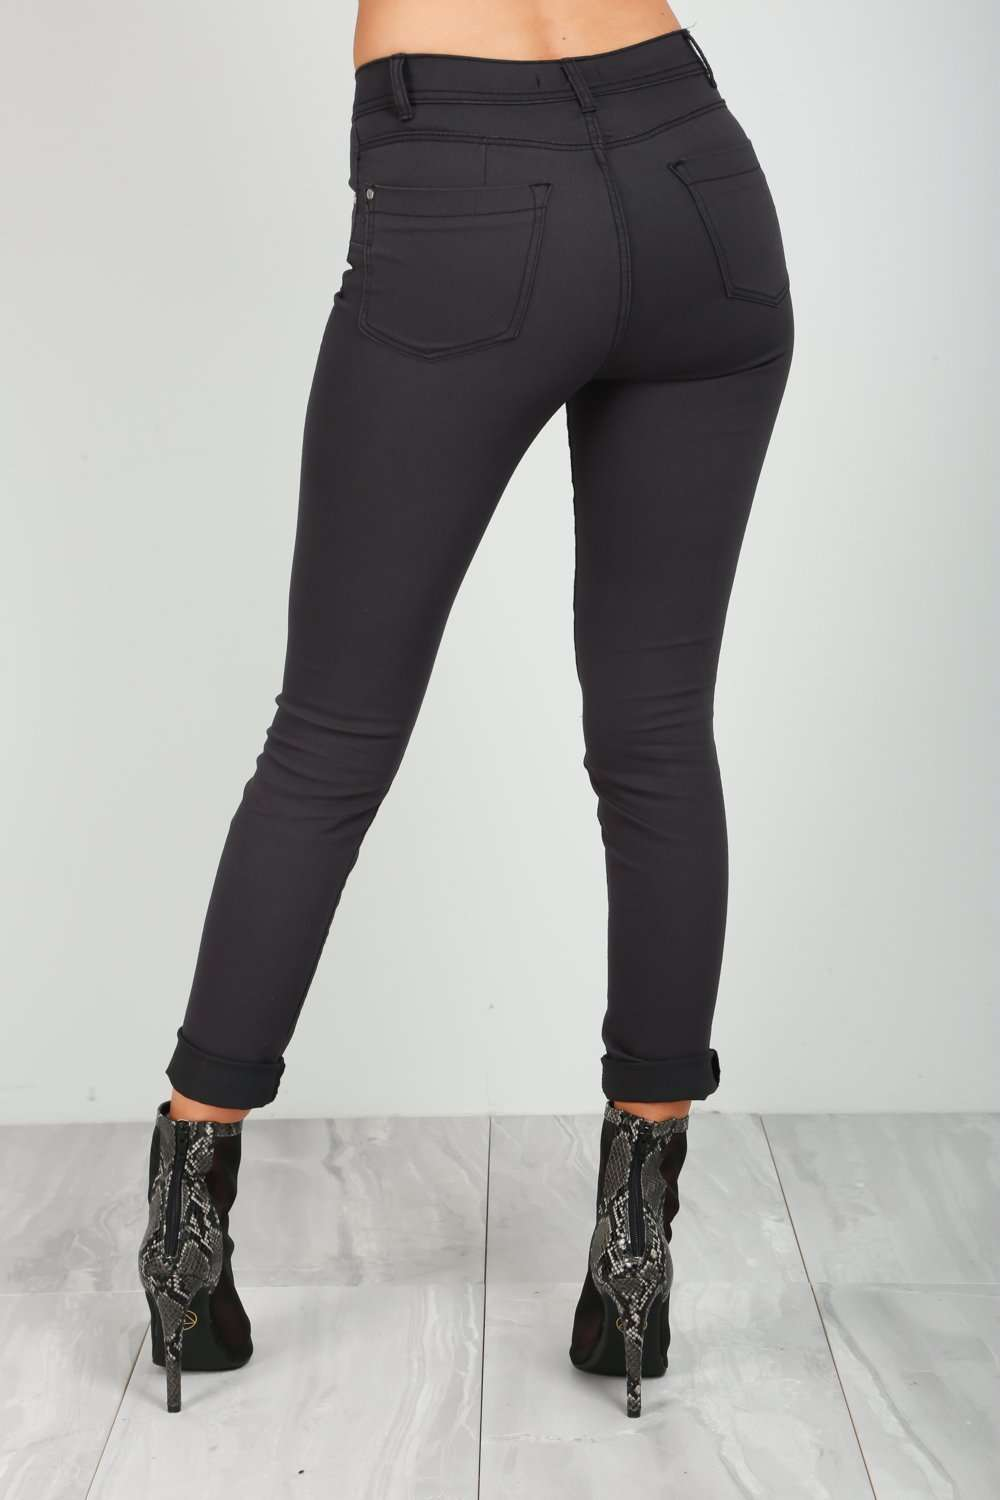 Esme High Waisted Grey Skinny Fit Jeans - bejealous-com